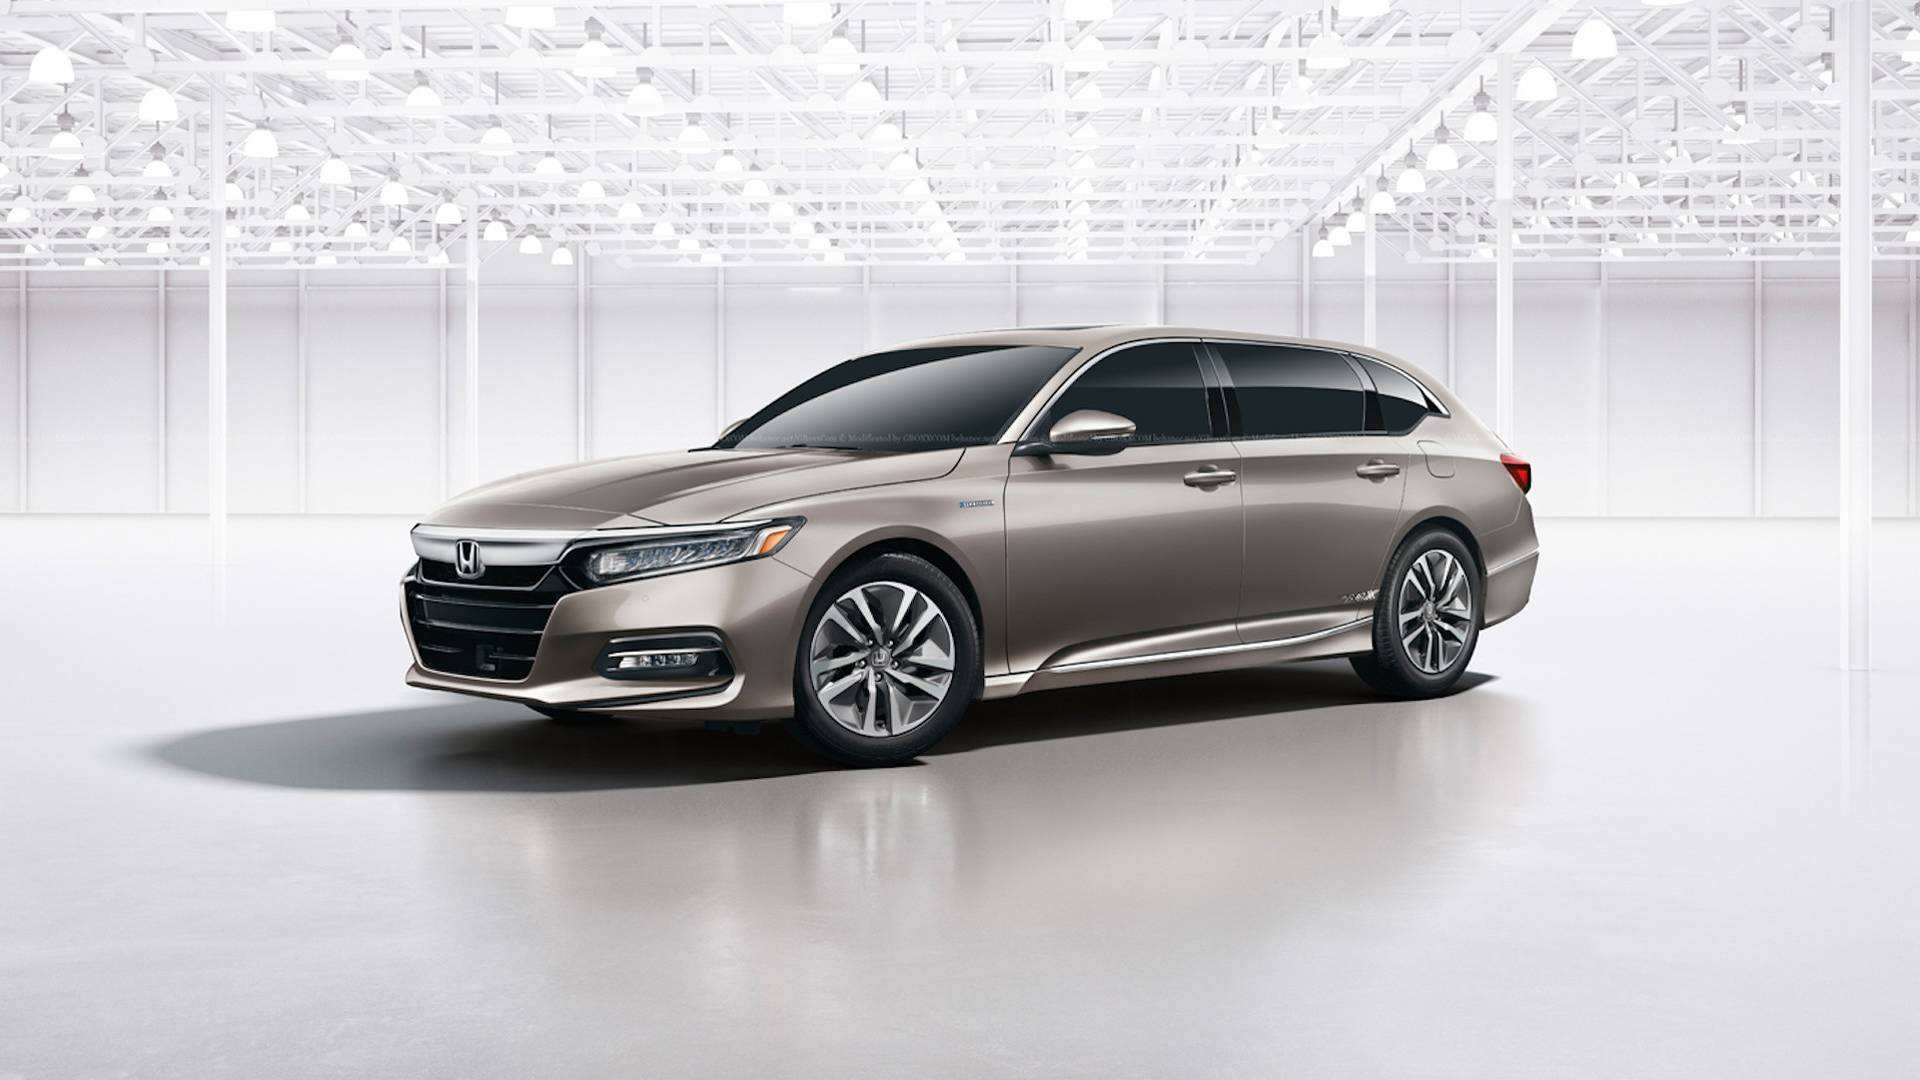 97 The Best 2019 Honda Wagon Research New